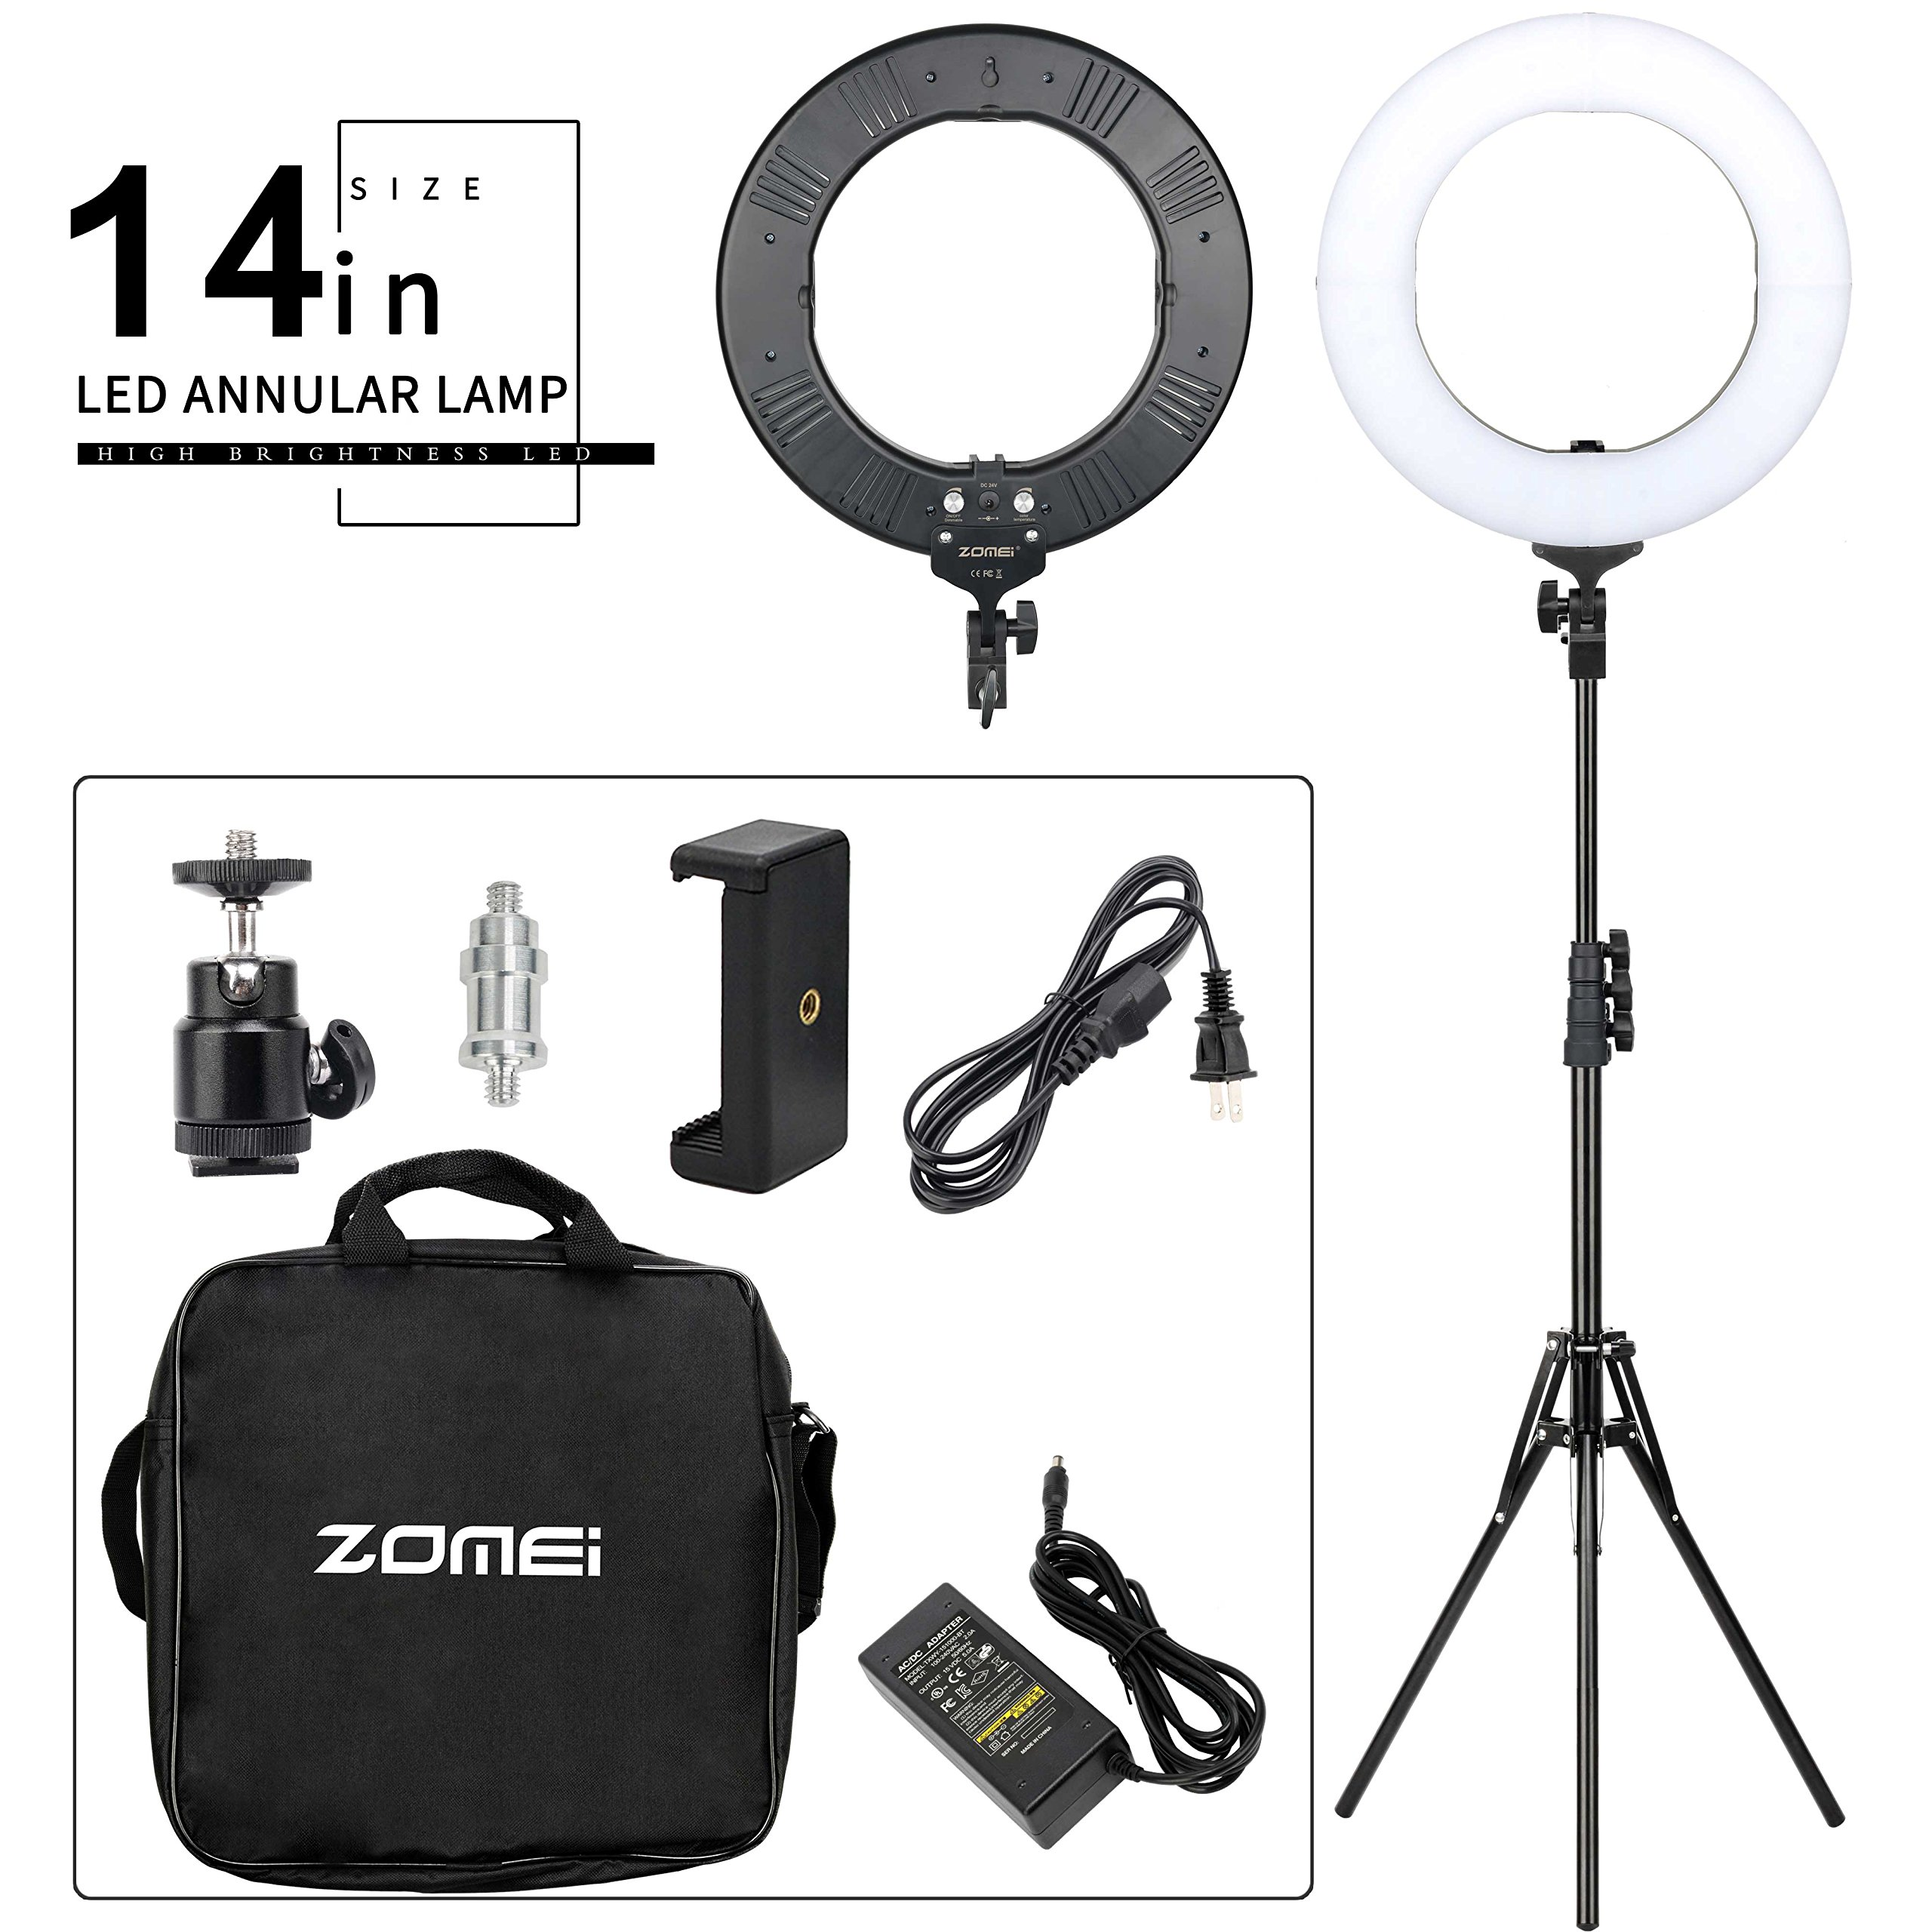 ZOMEI 14-inch Bi-Color Stepless Dimmable LED Ring Light Kitwith Stand 41W 5500K Output Hot Shoe Adapter for Outdoor Shooting Live Streaming Make up and YouTube Video